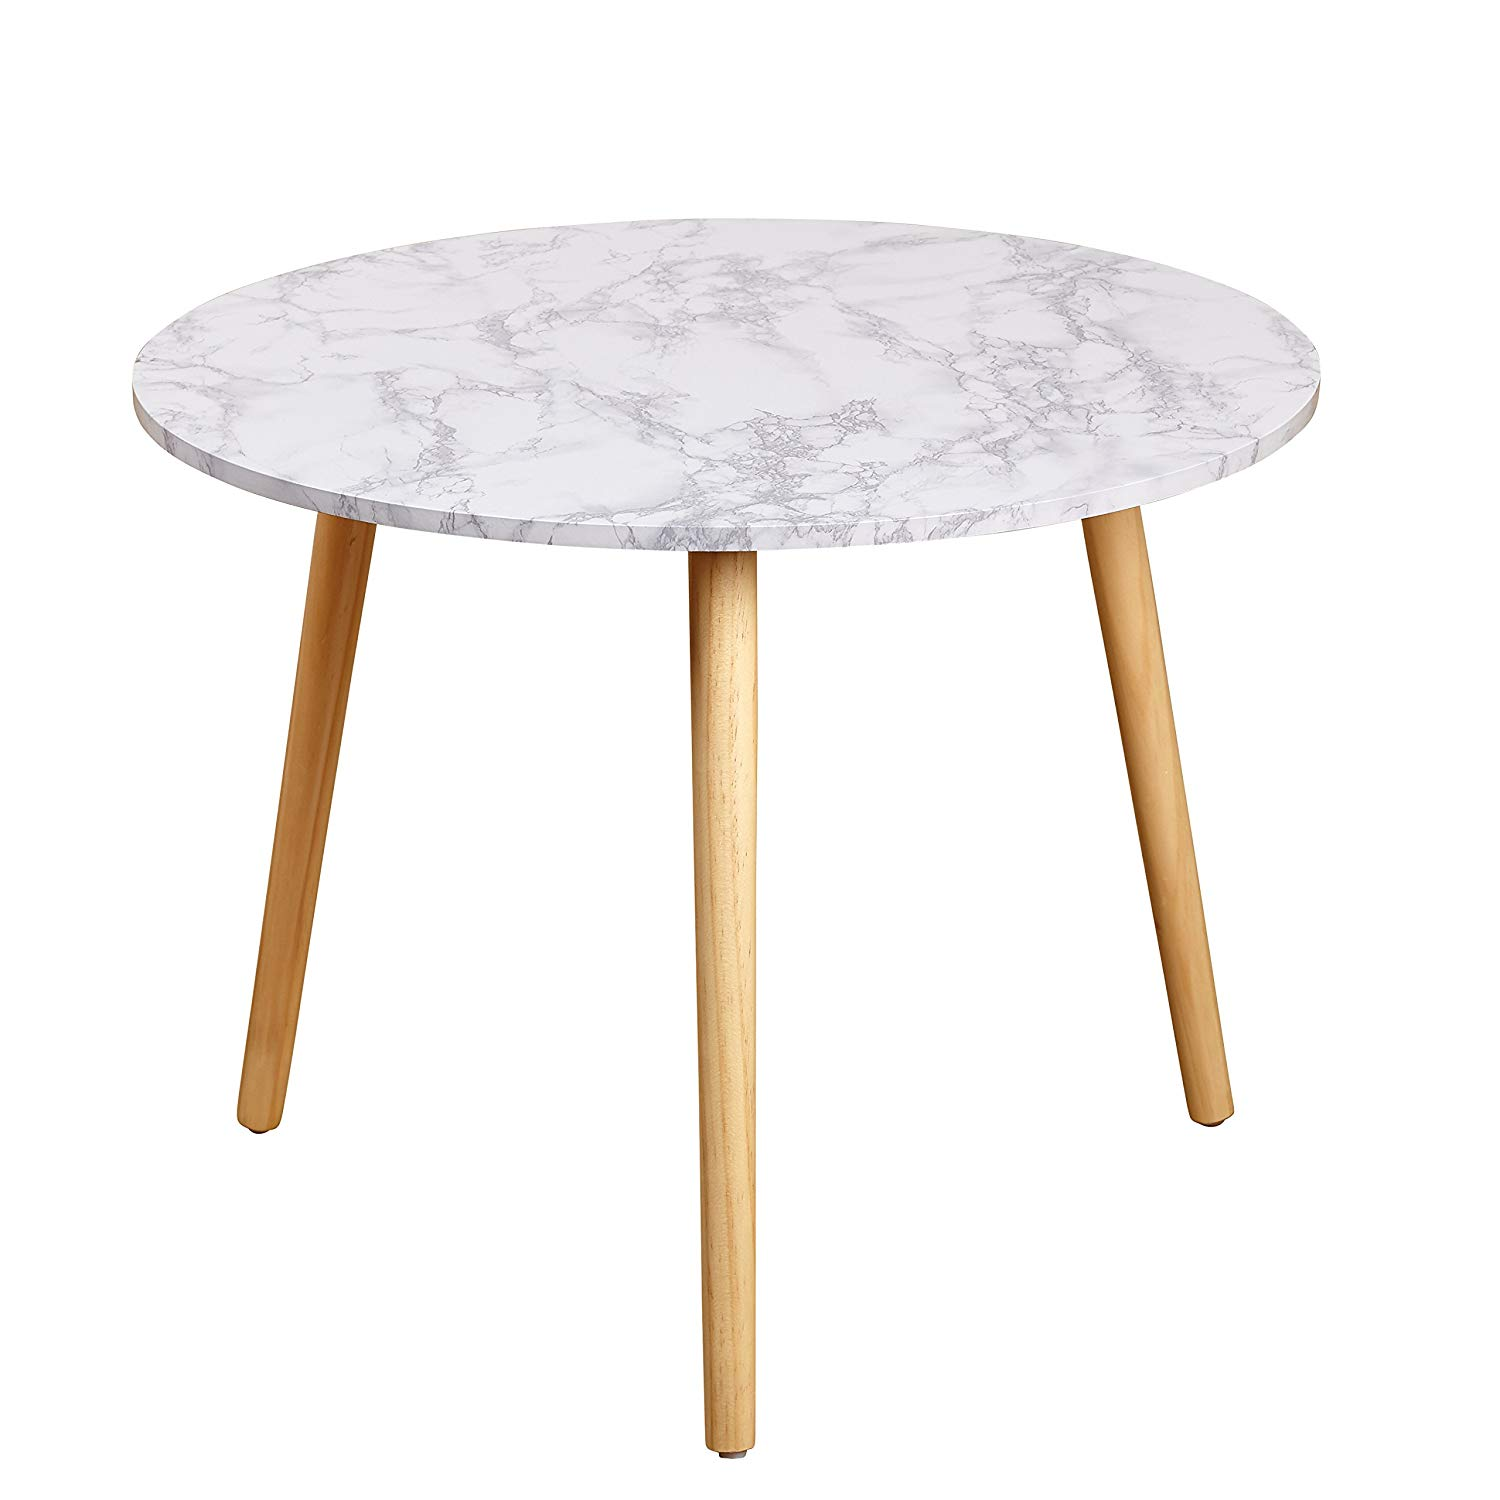 target marketing systems darcy collection mid century base accent table modern laminated faux marble top side end white kitchen dining pottery barn room chairs tables round glass